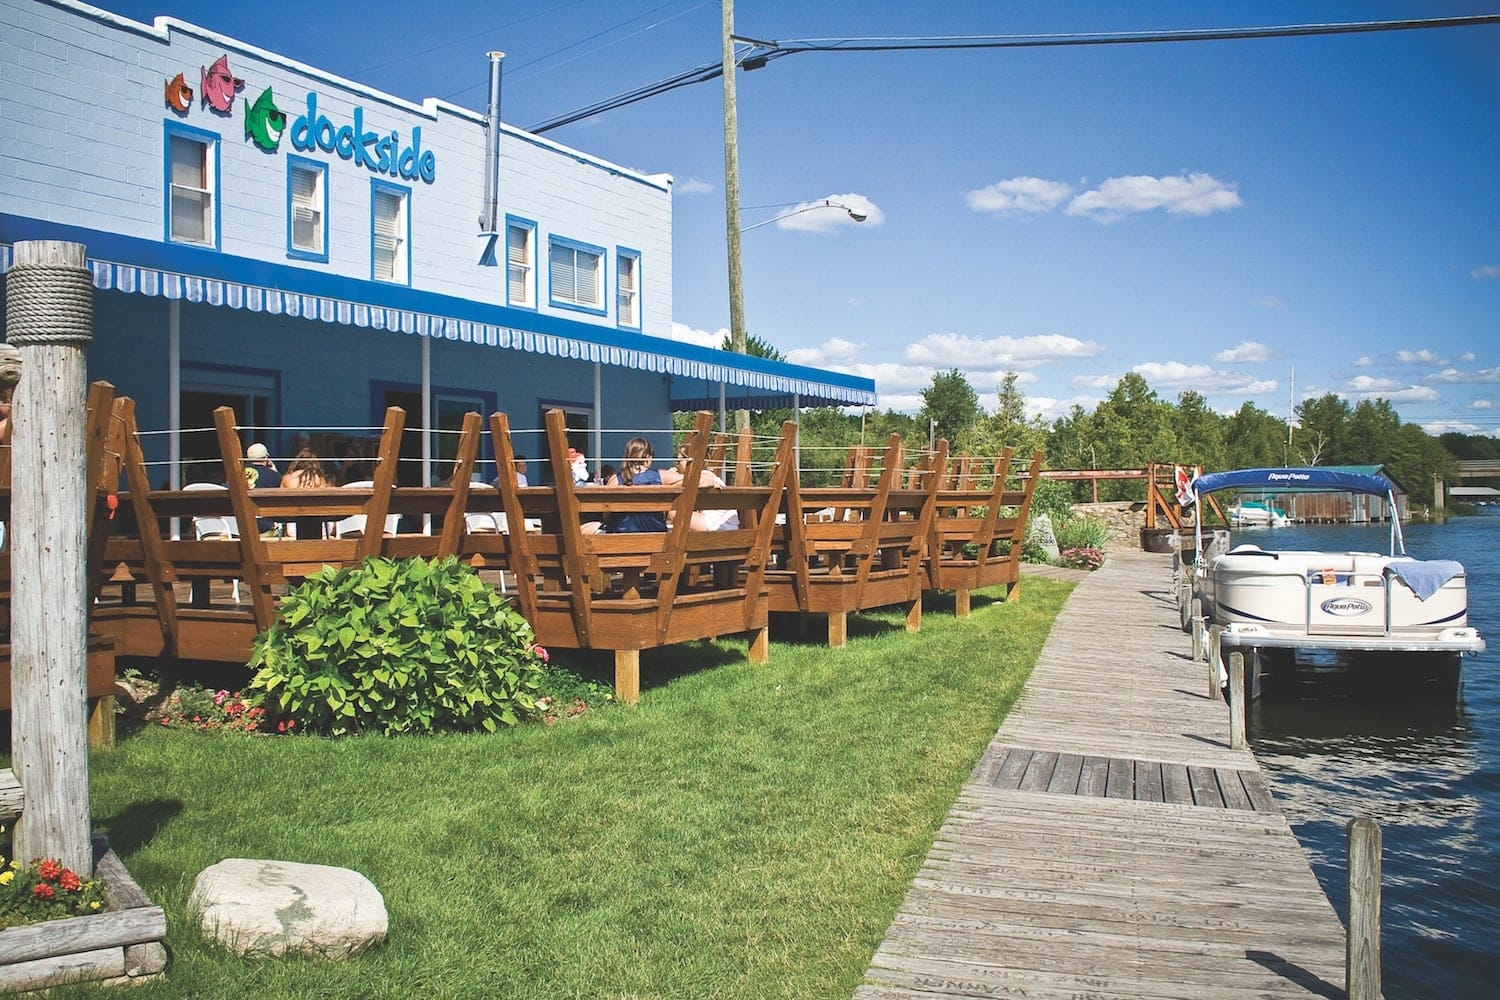 Duck Bay Marina >> 8 Northern Michigan Restaurants with Waterfront Dining - MyNorth.com